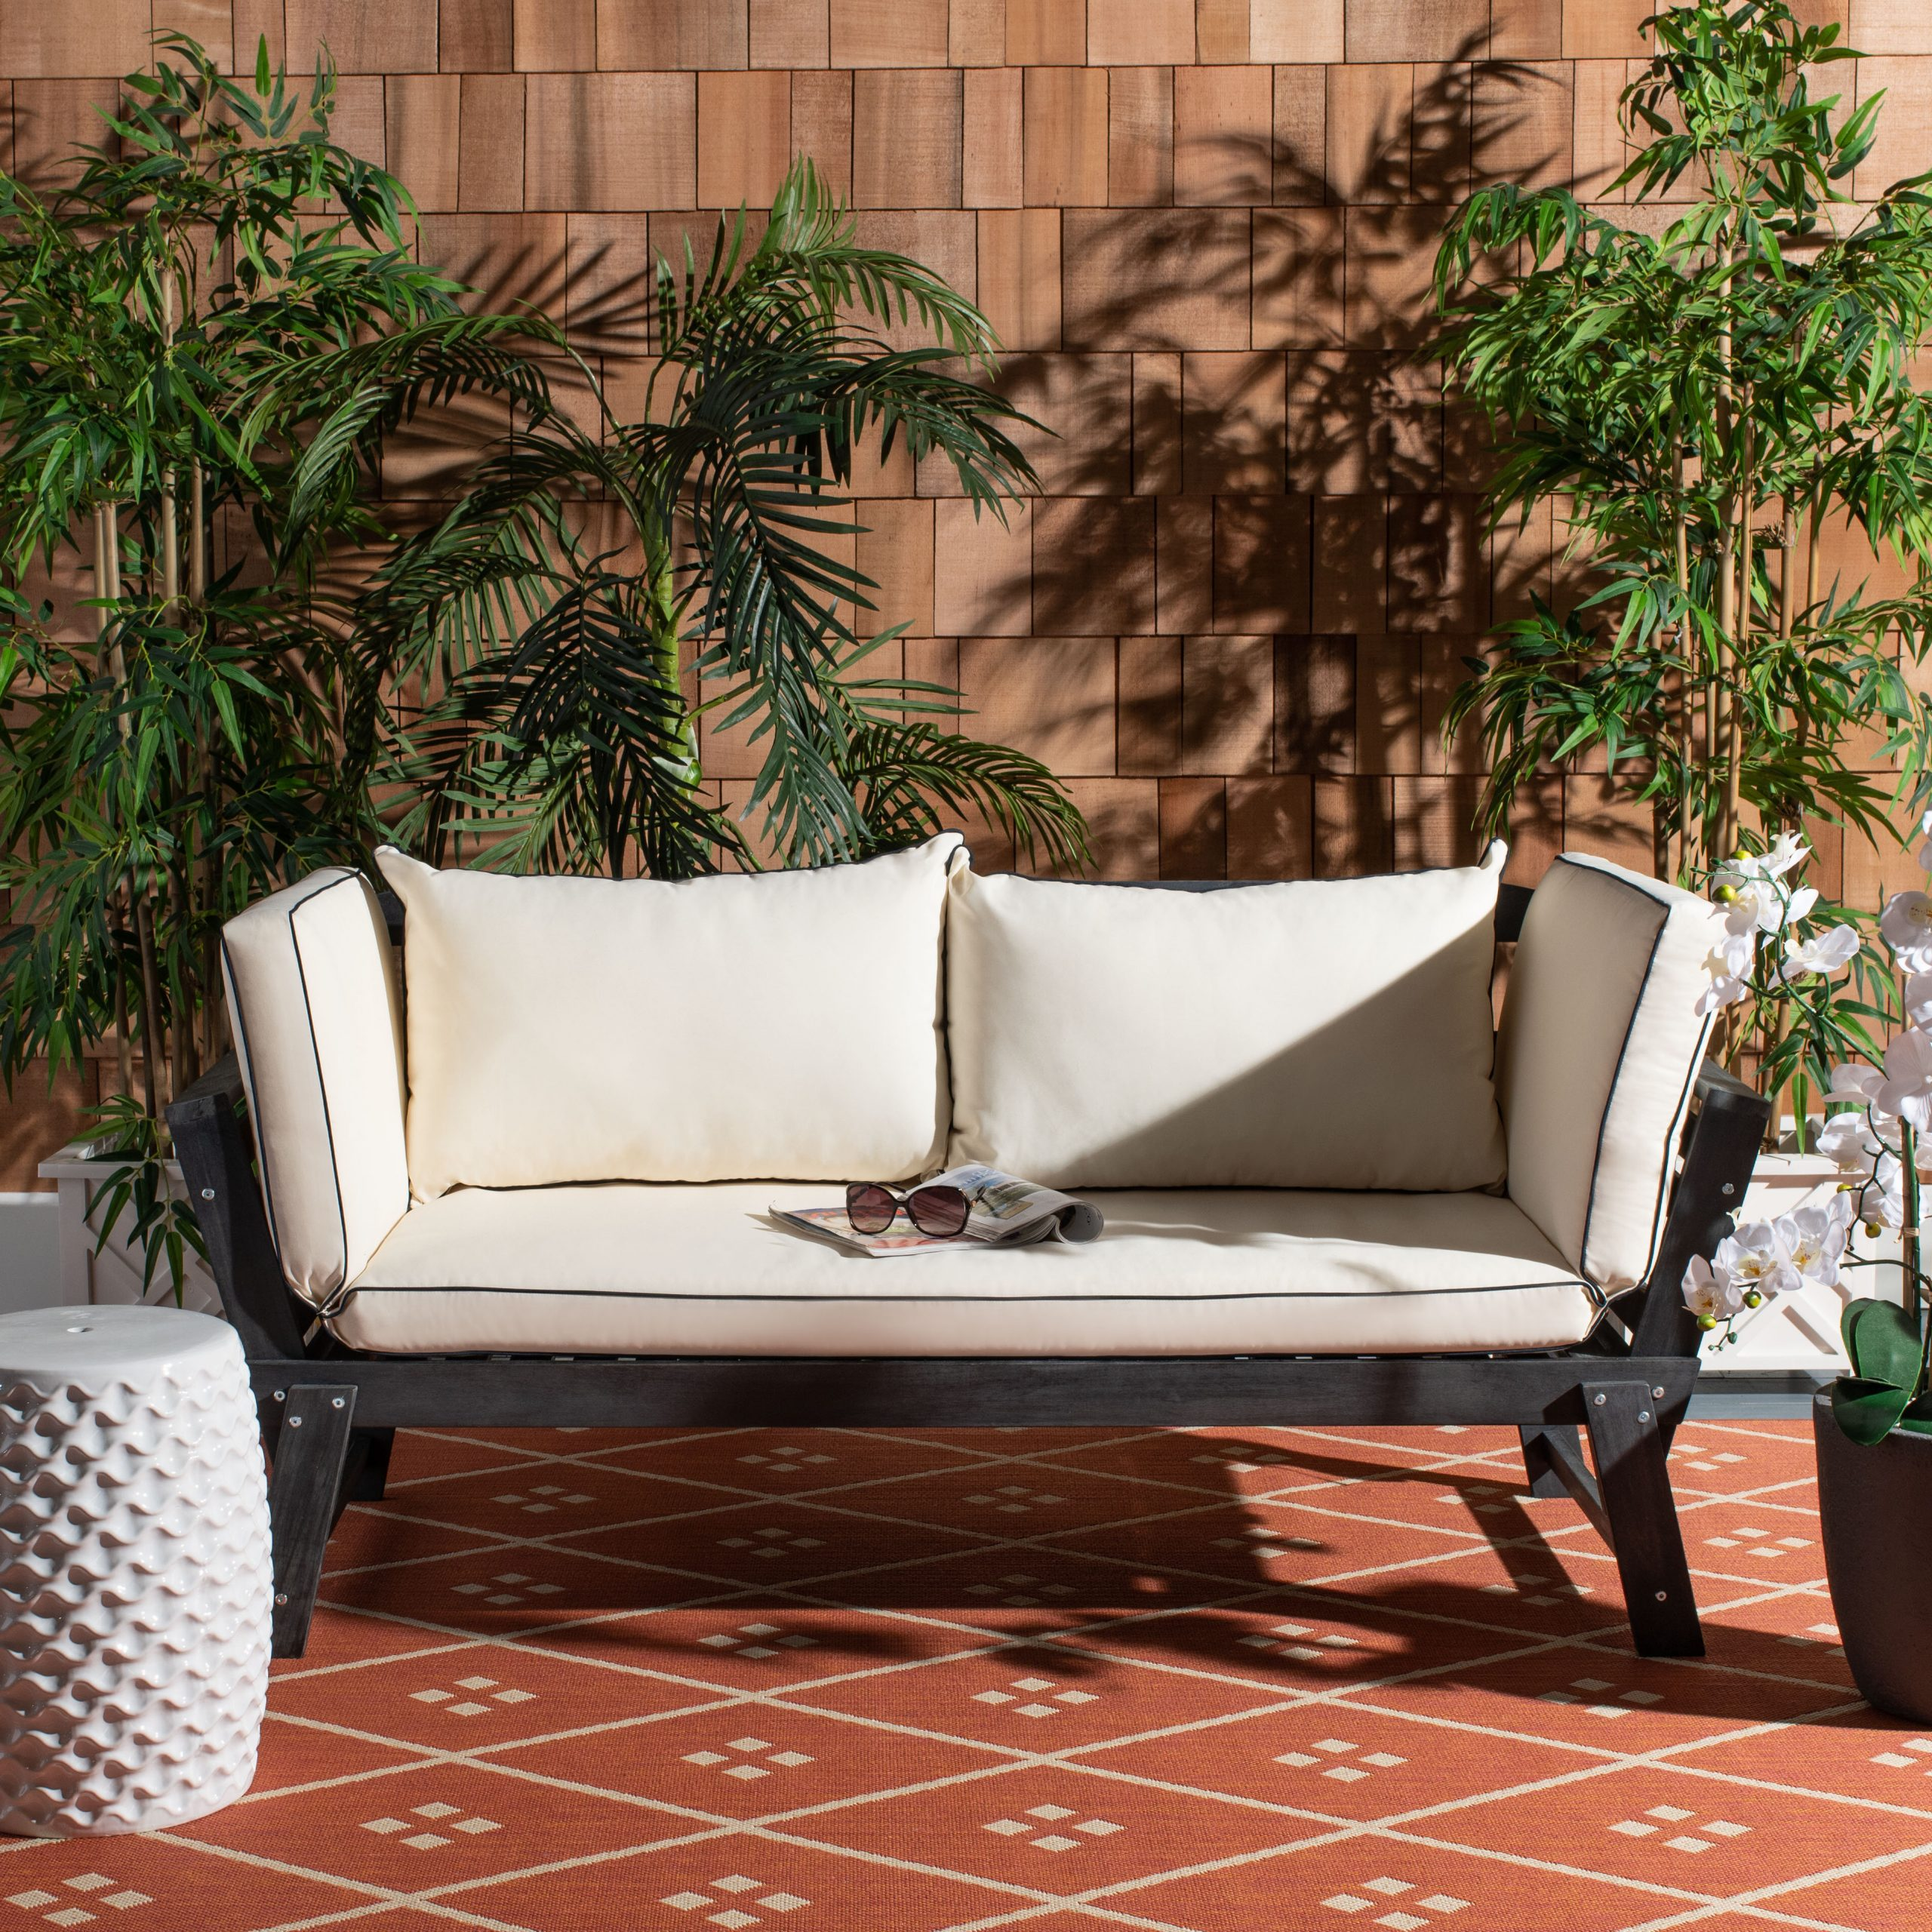 Dowling Patio Daybeds With Cushion For Widely Used Birch Lane™ Heritage Beal Patio Daybed With Cushions (View 16 of 25)